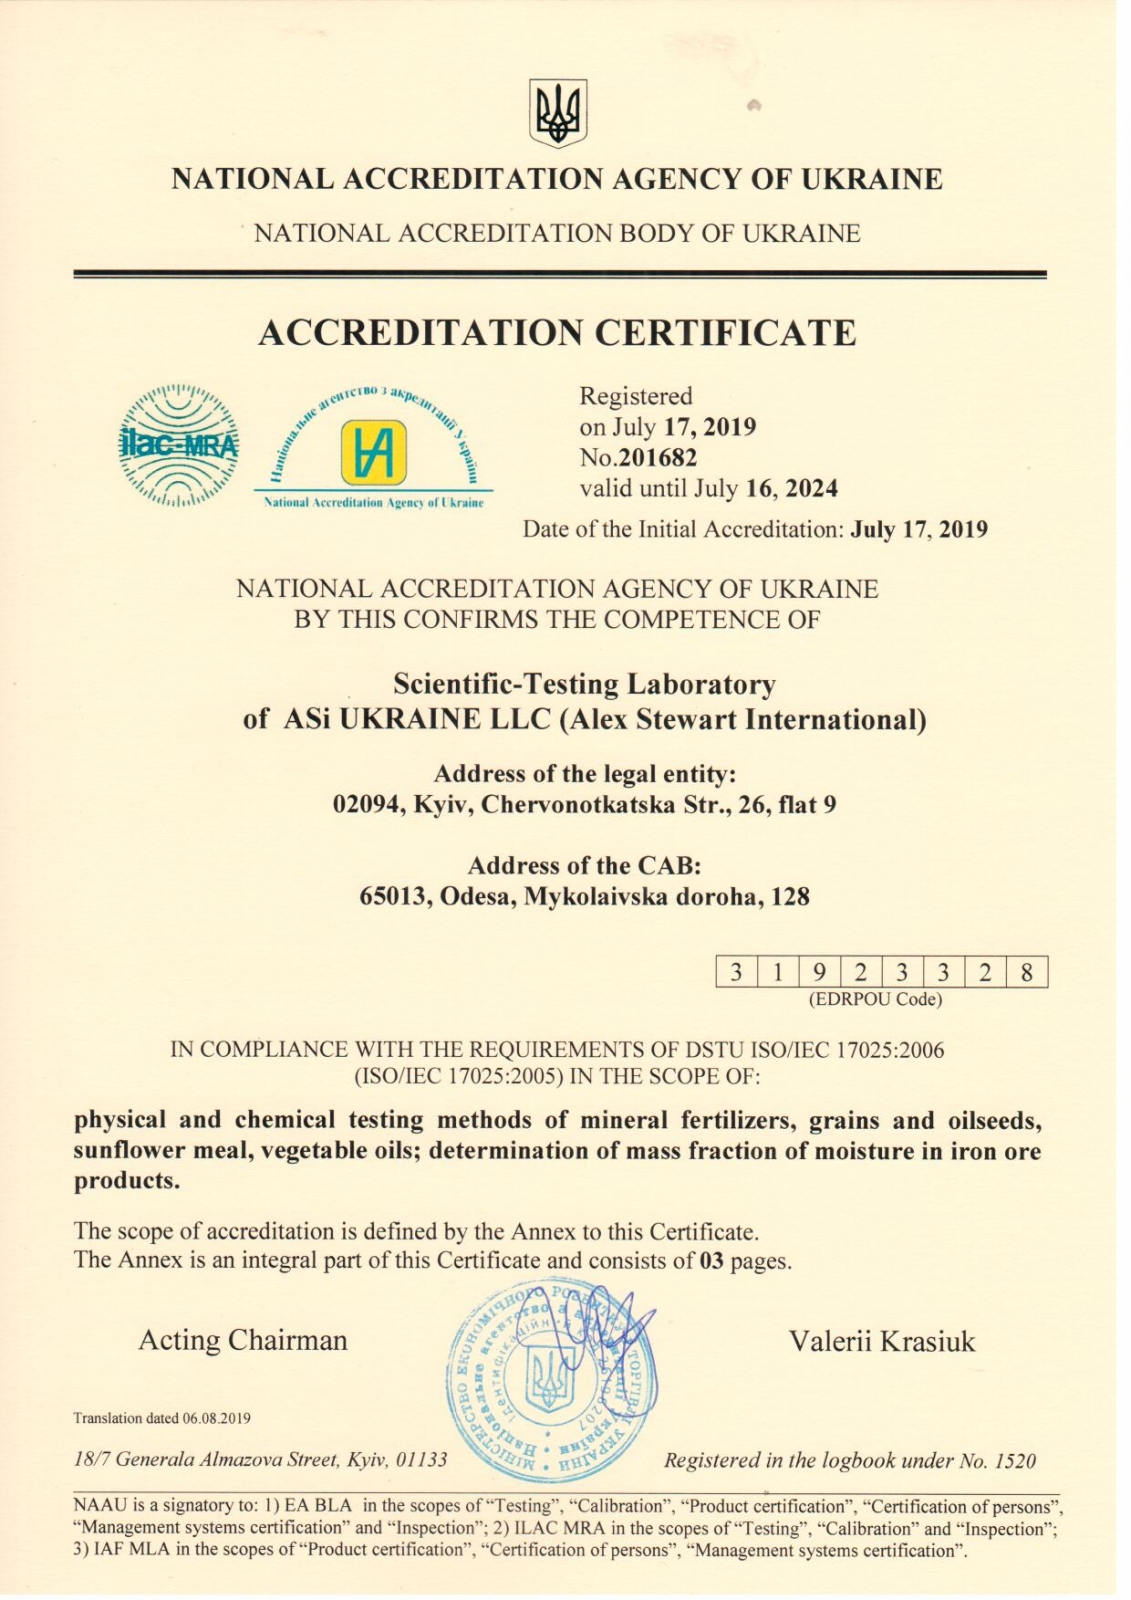 NAAU Accreditation Certificate of compliance with requirements of DSTU ISO/IEC 17025